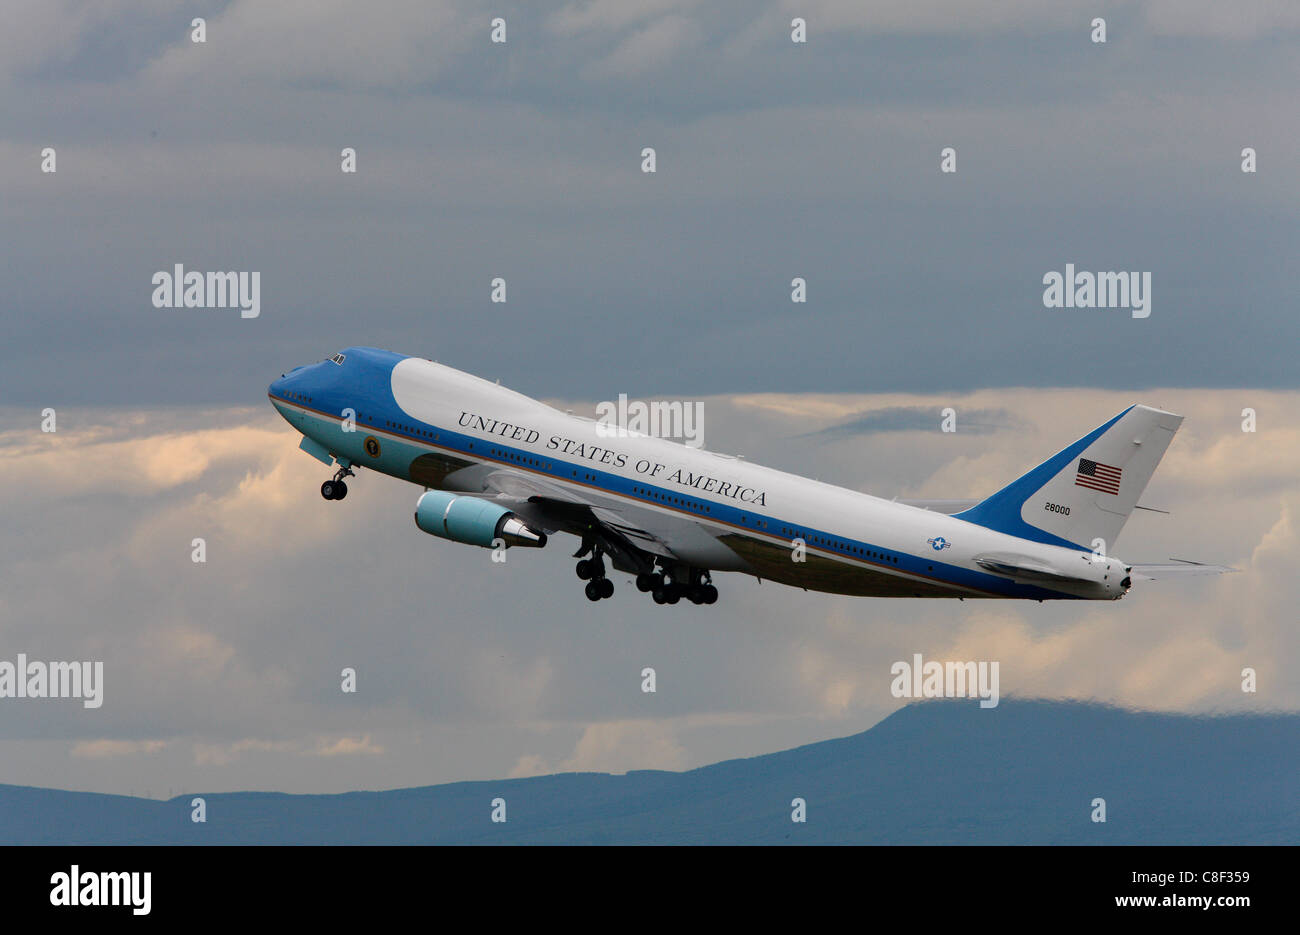 U.S. Airforce One departs from Belfast, Northern Ireland with President George Bush onboard - Stock Image